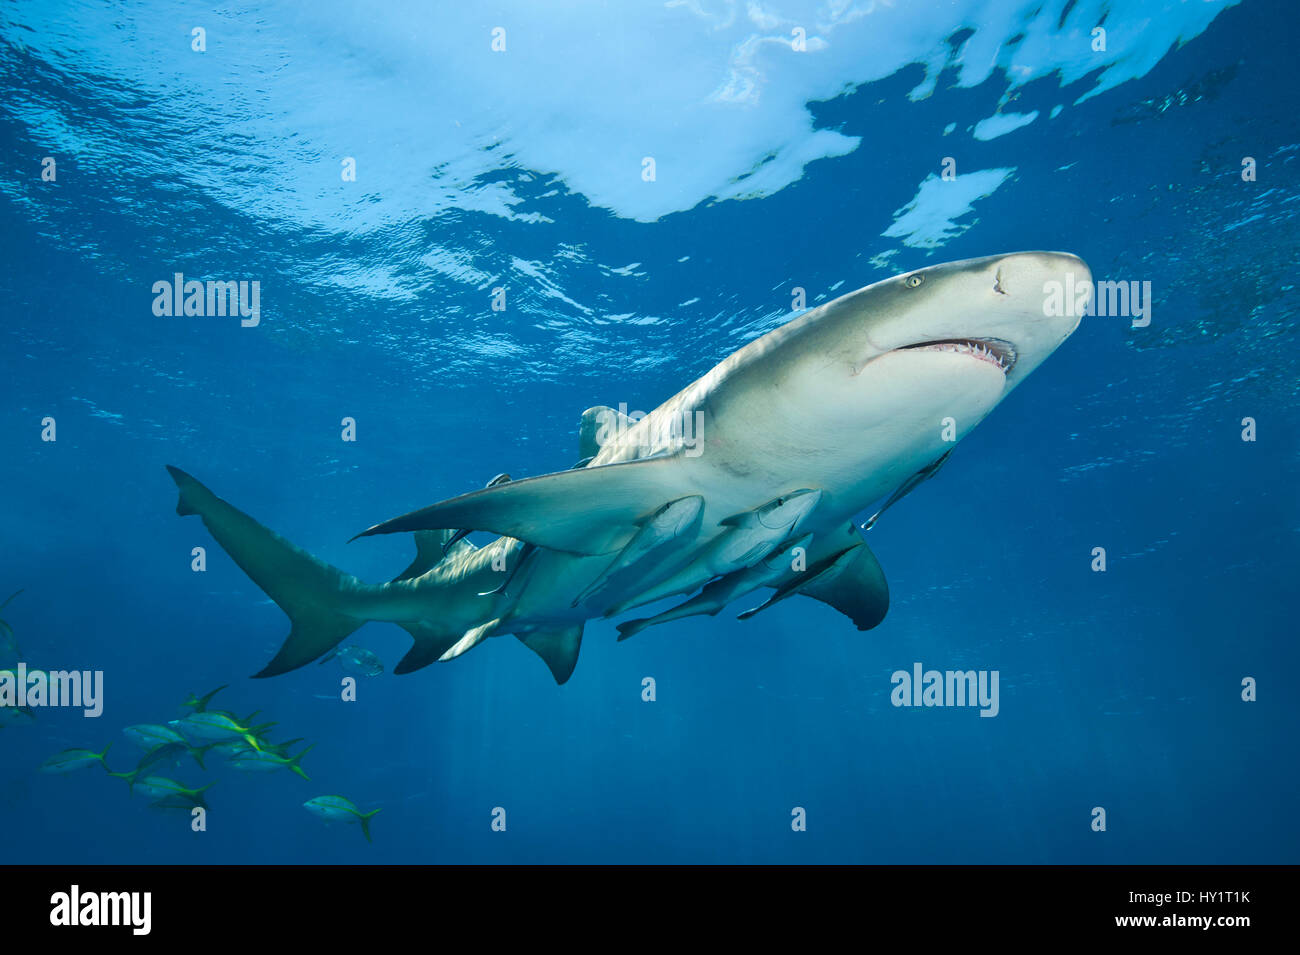 Lemon shark (Negaprion brevirostris) accompanied by Remoras (Echeneis naucrates) swimming close to surface. Grand - Stock Image